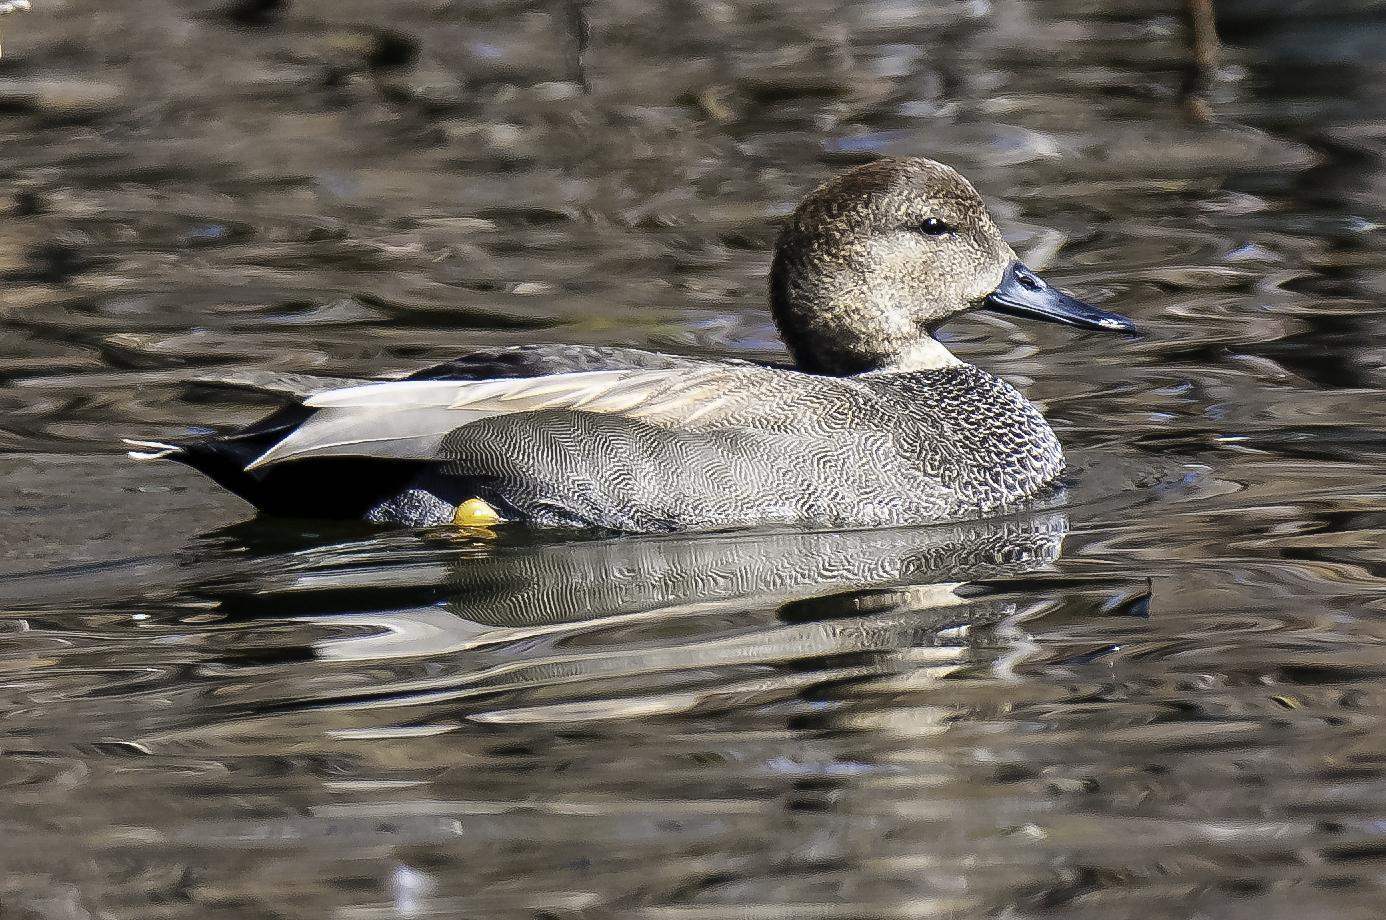 Gadwall Photo by Mason Rose